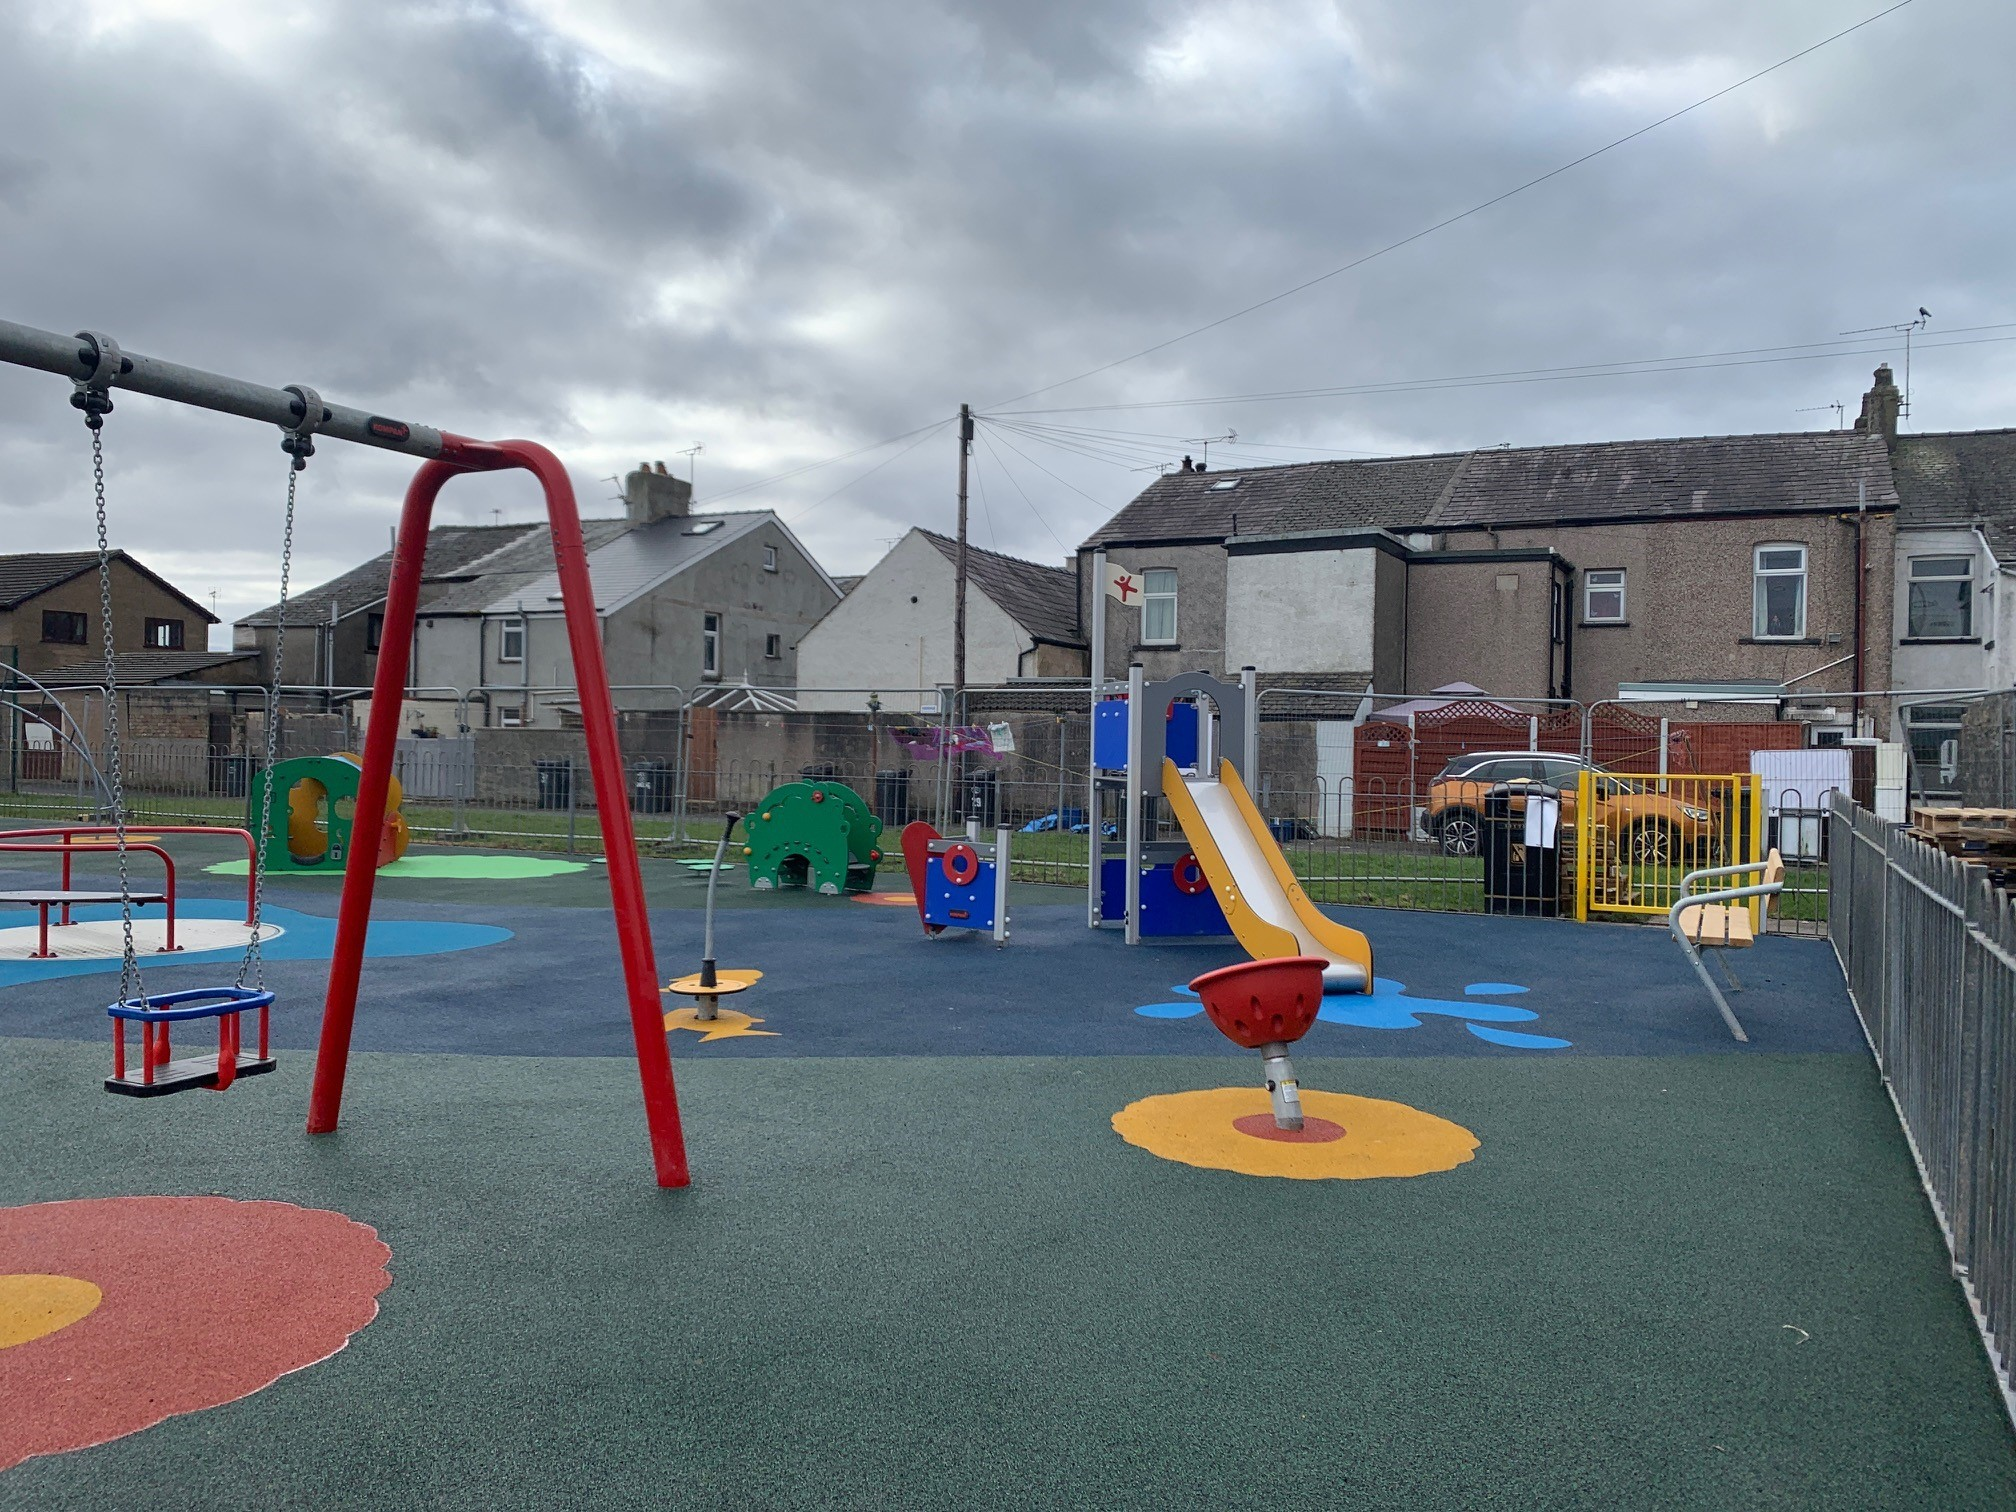 A new play area has opened after an £85,000 overhaul by the council.